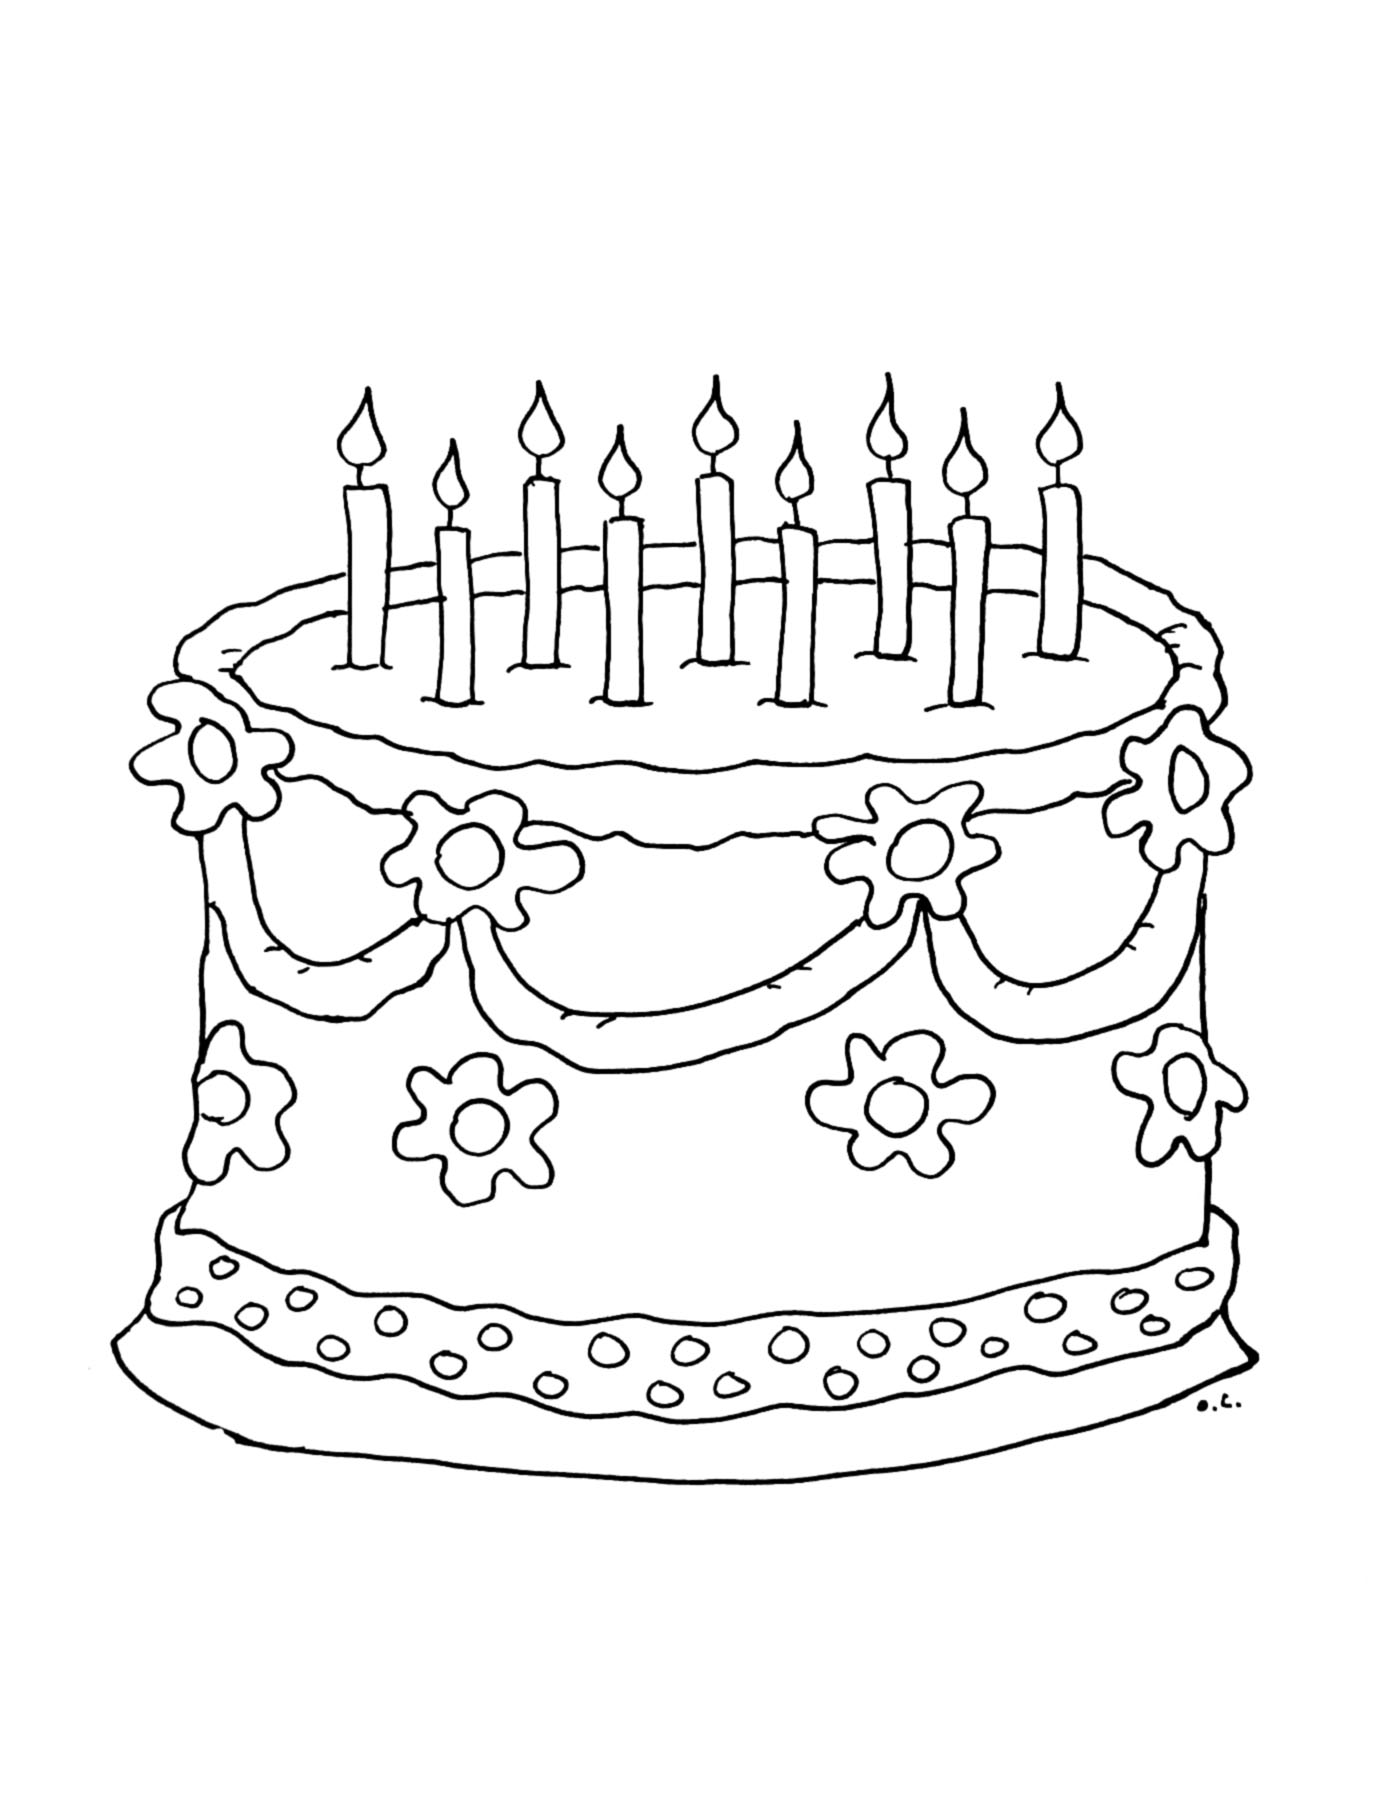 gateau anniversaire coloriage anniversaire coloriages. Black Bedroom Furniture Sets. Home Design Ideas